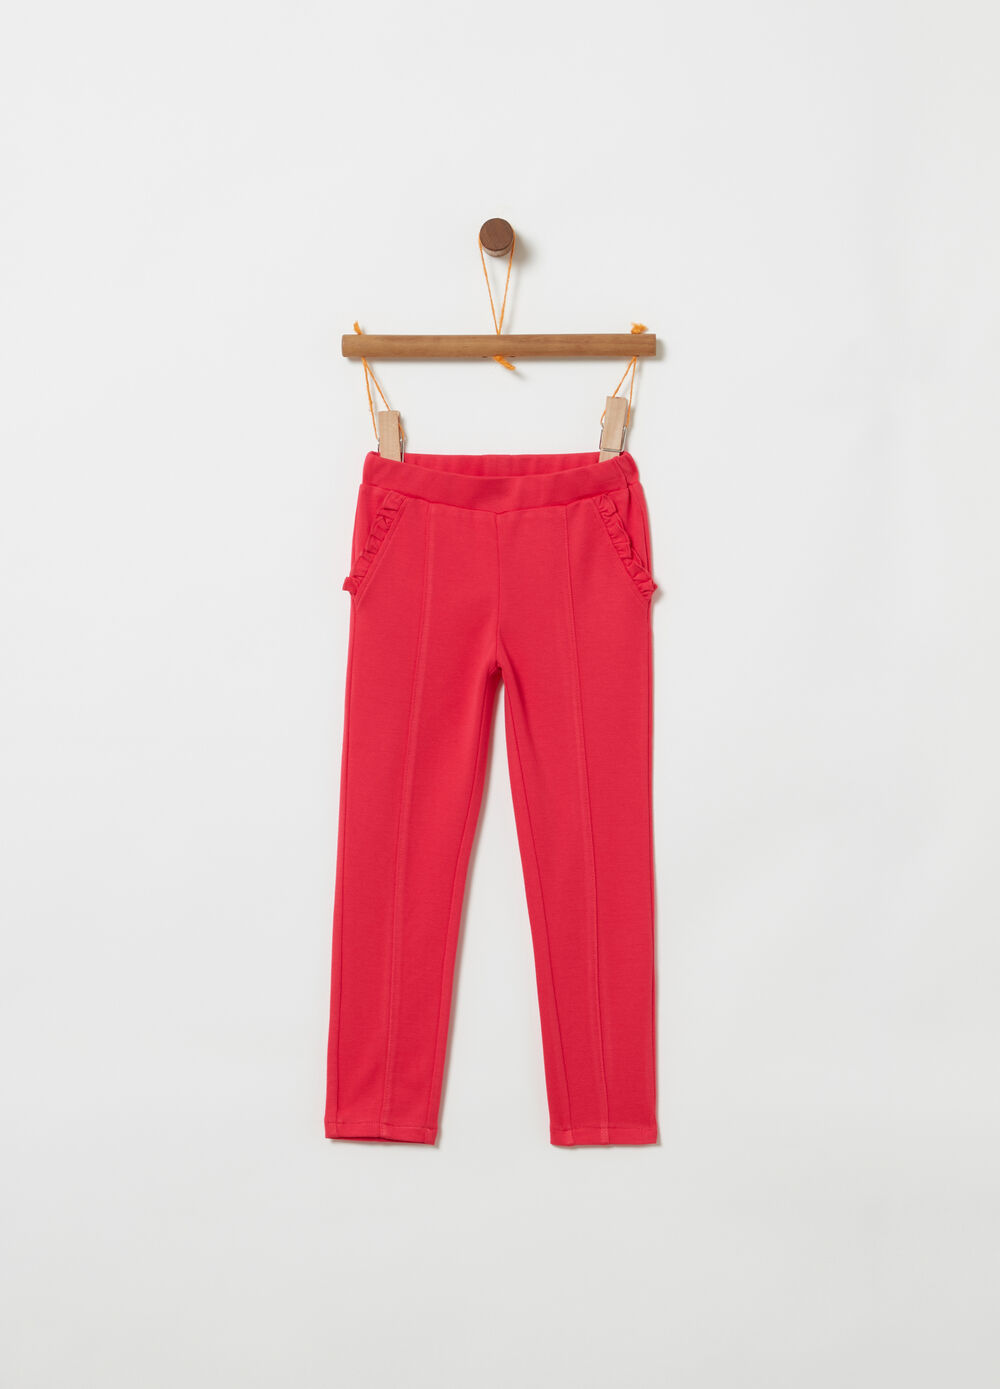 Piquet trousers with elastic waistband and frills